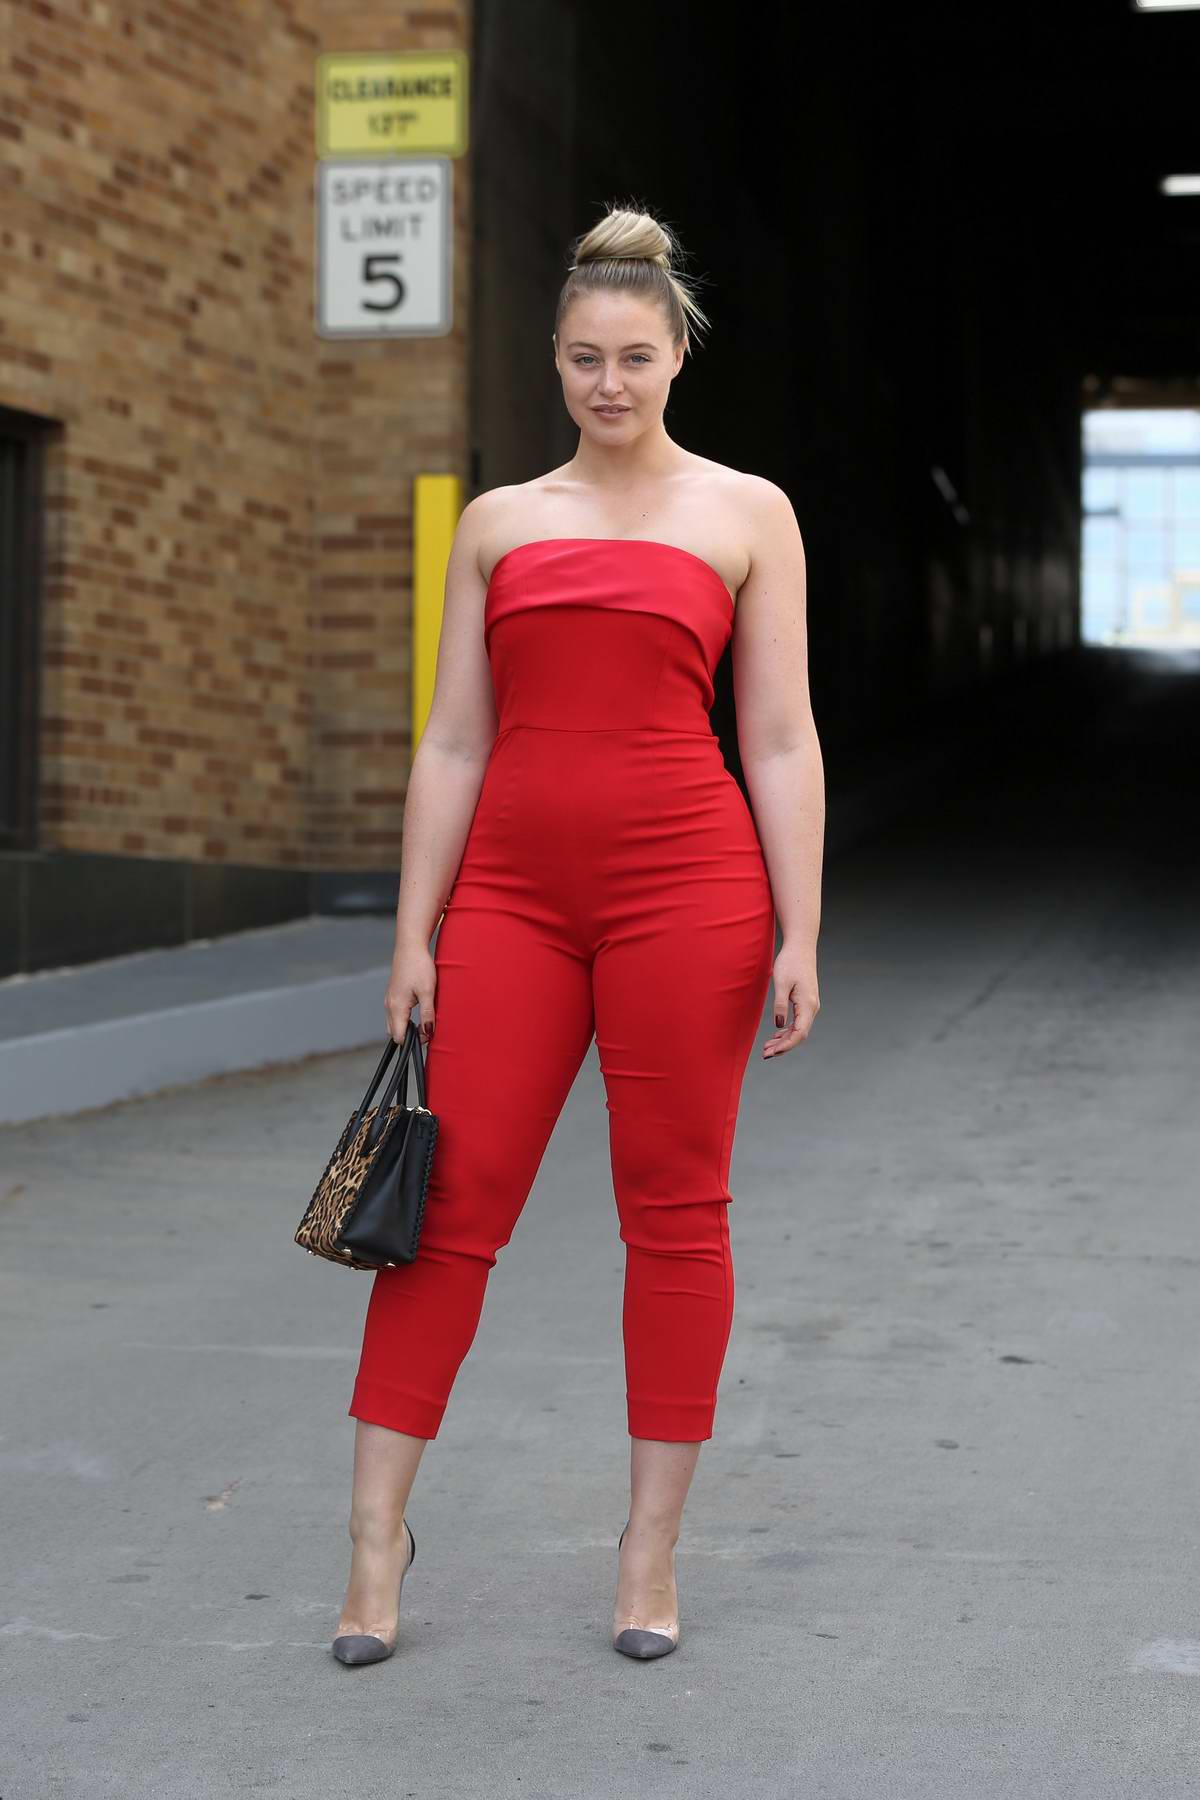 Iskra Lawrence wearing a red jumpsuit, attends Badgley Mischka spring summer 2018 at Skylight Clarkson during New York Fashion Week